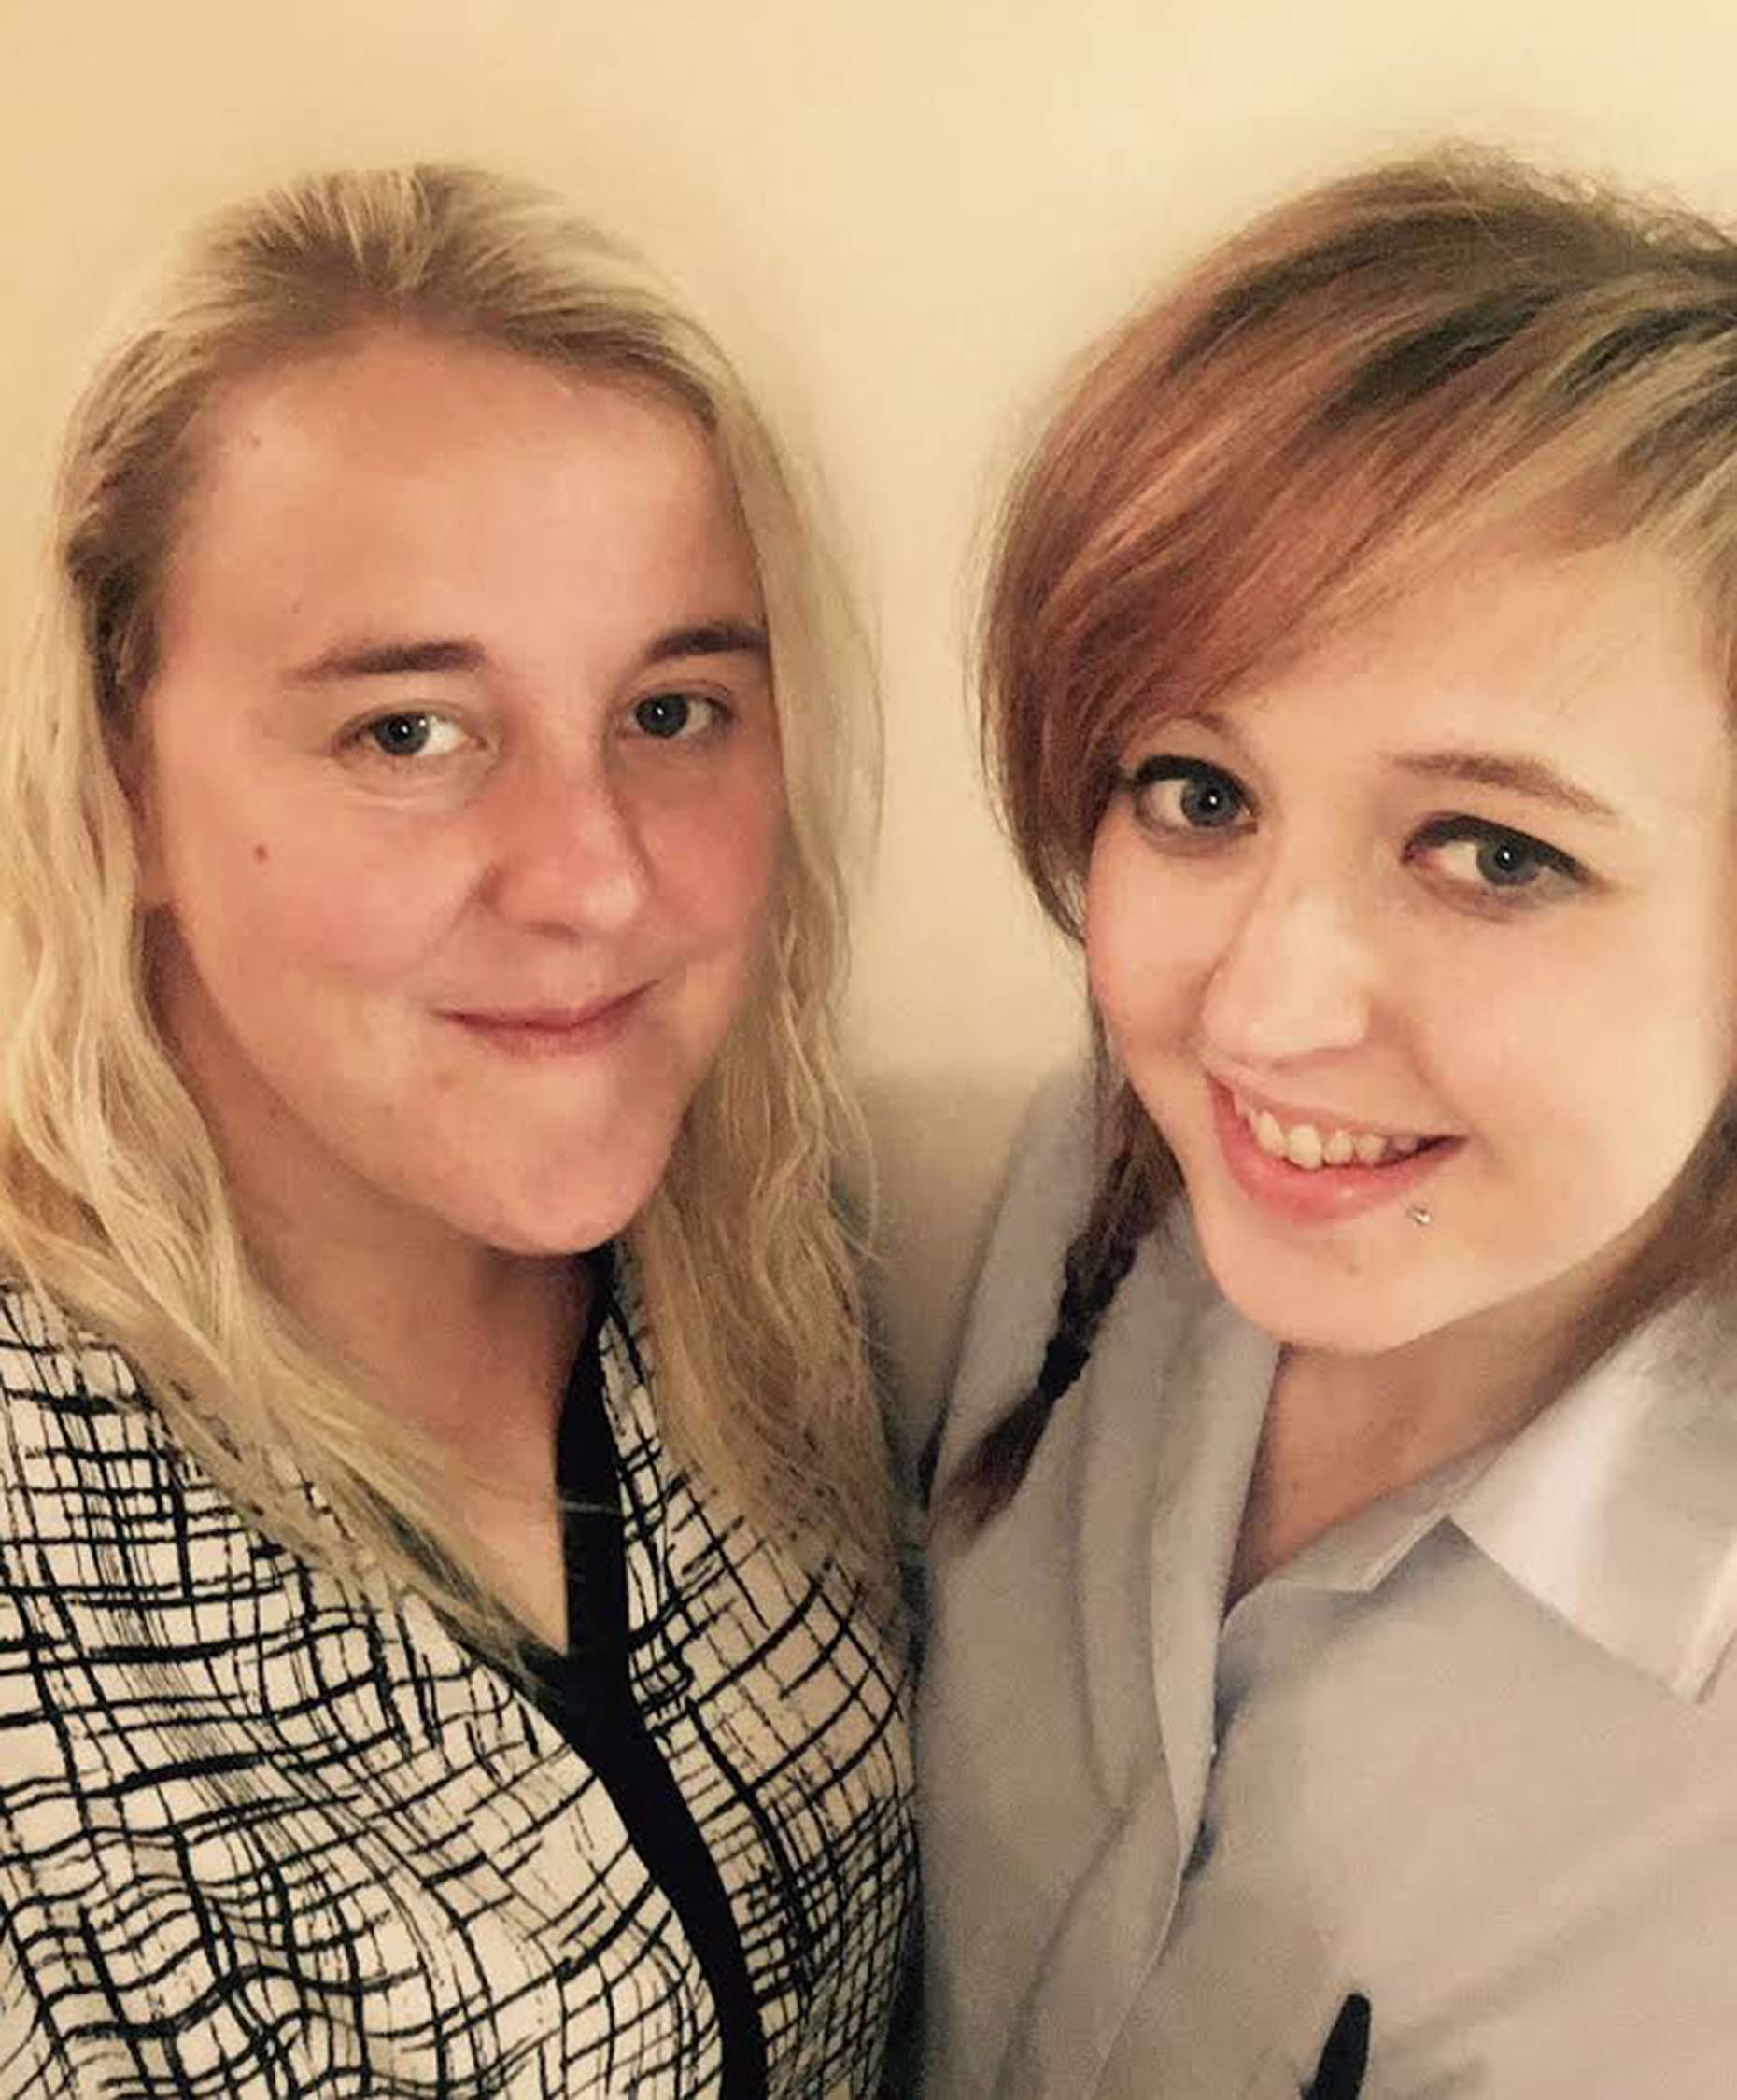 Gemma Bell (left) and Chelsea